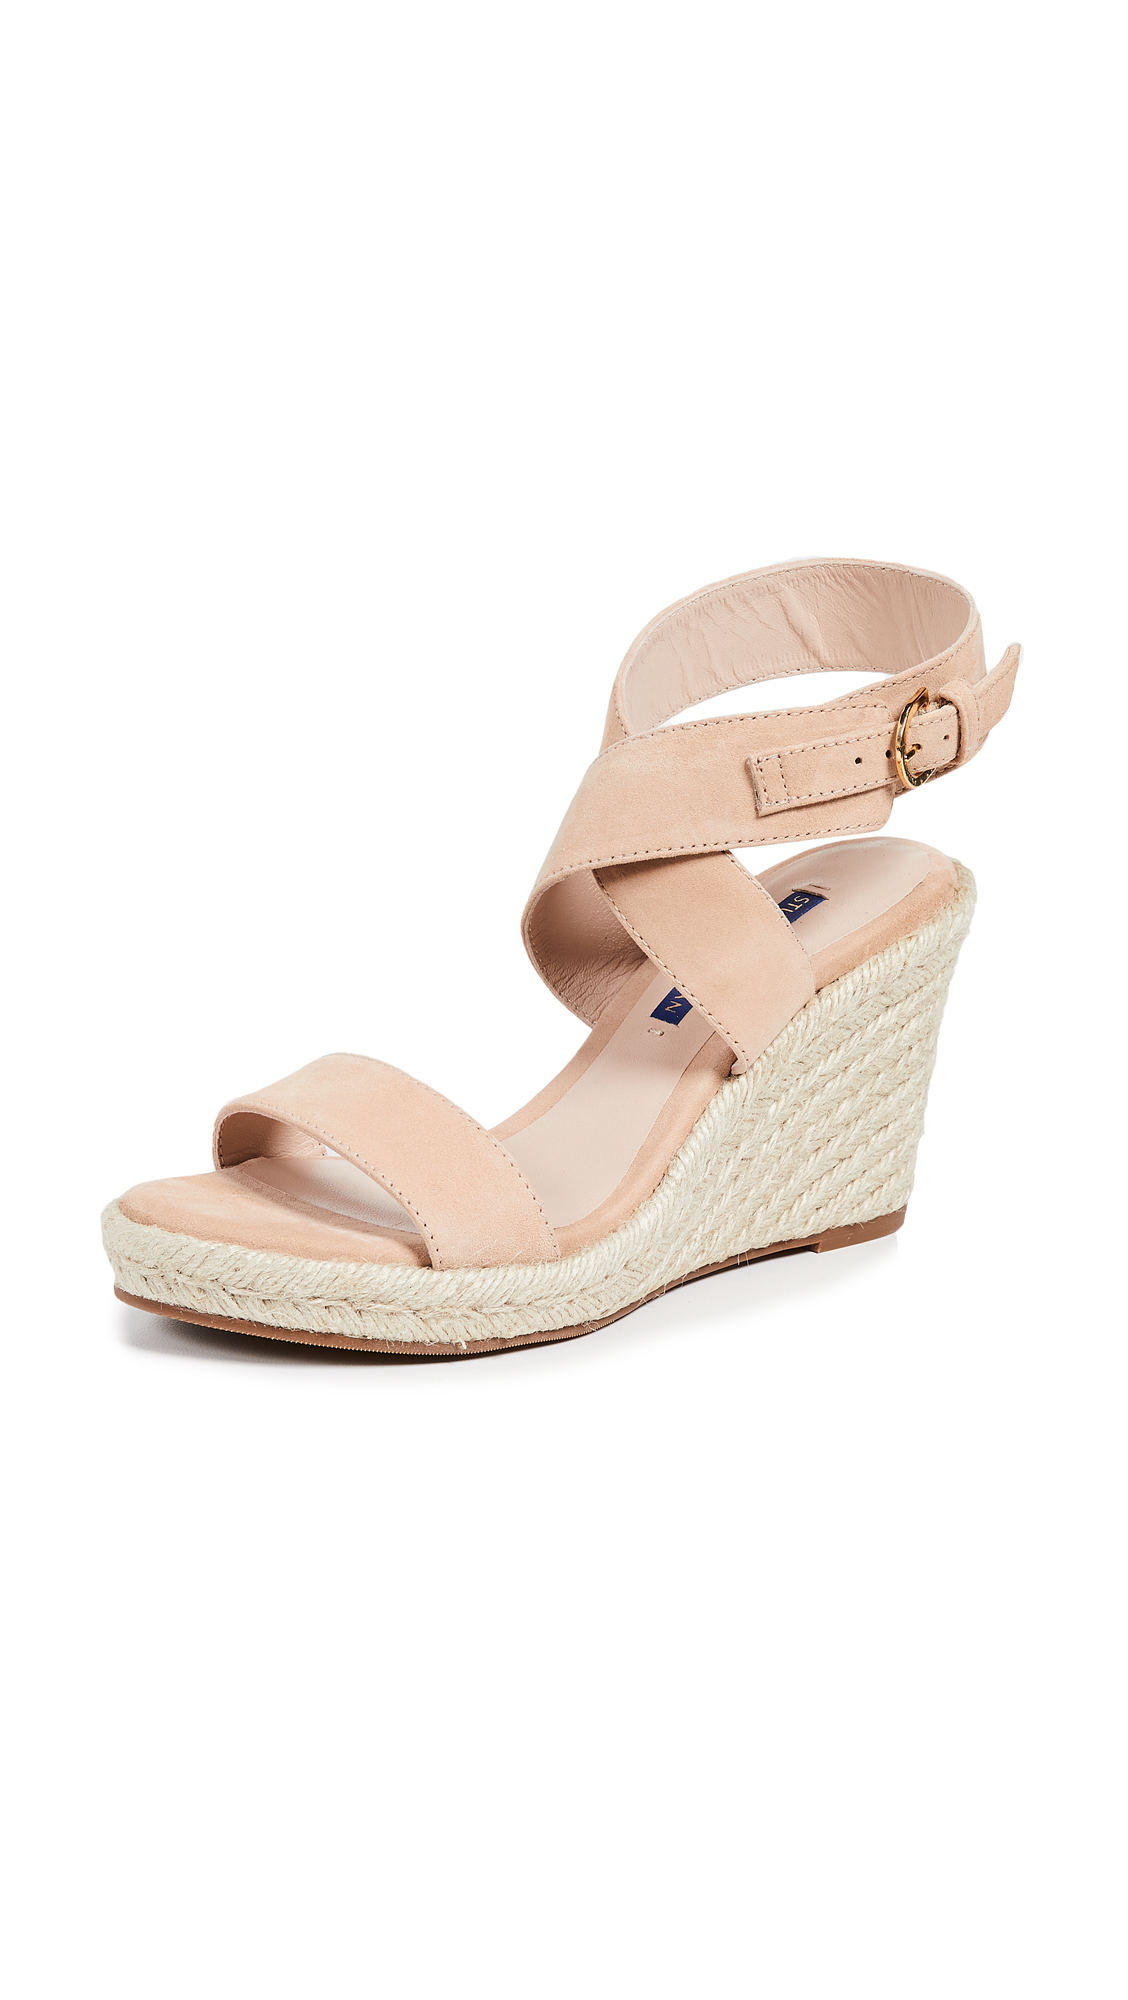 Stuart Weitzman Lexia Wedge Sandals - Adobe